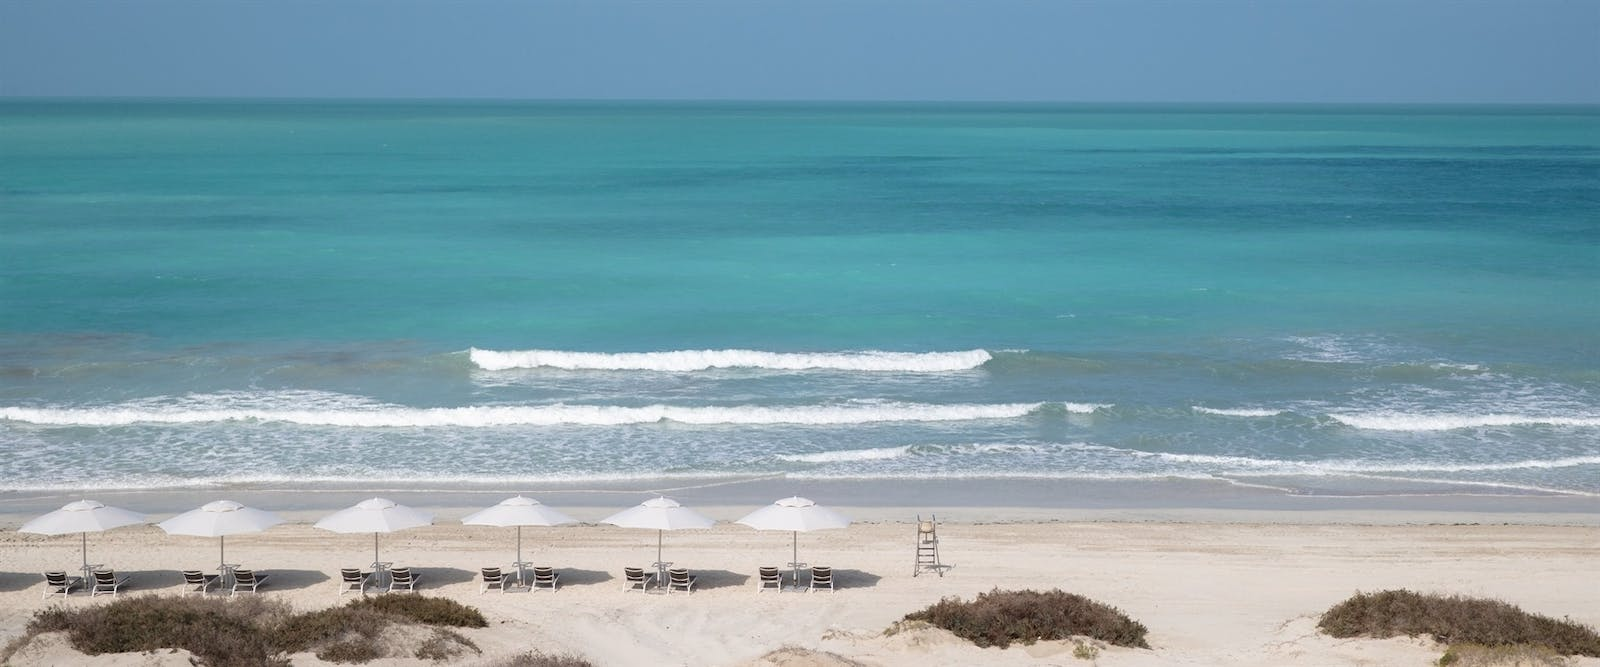 Beach View from Resort at Jumeirah at Saadiyat Island Resort, Abu Dhabi